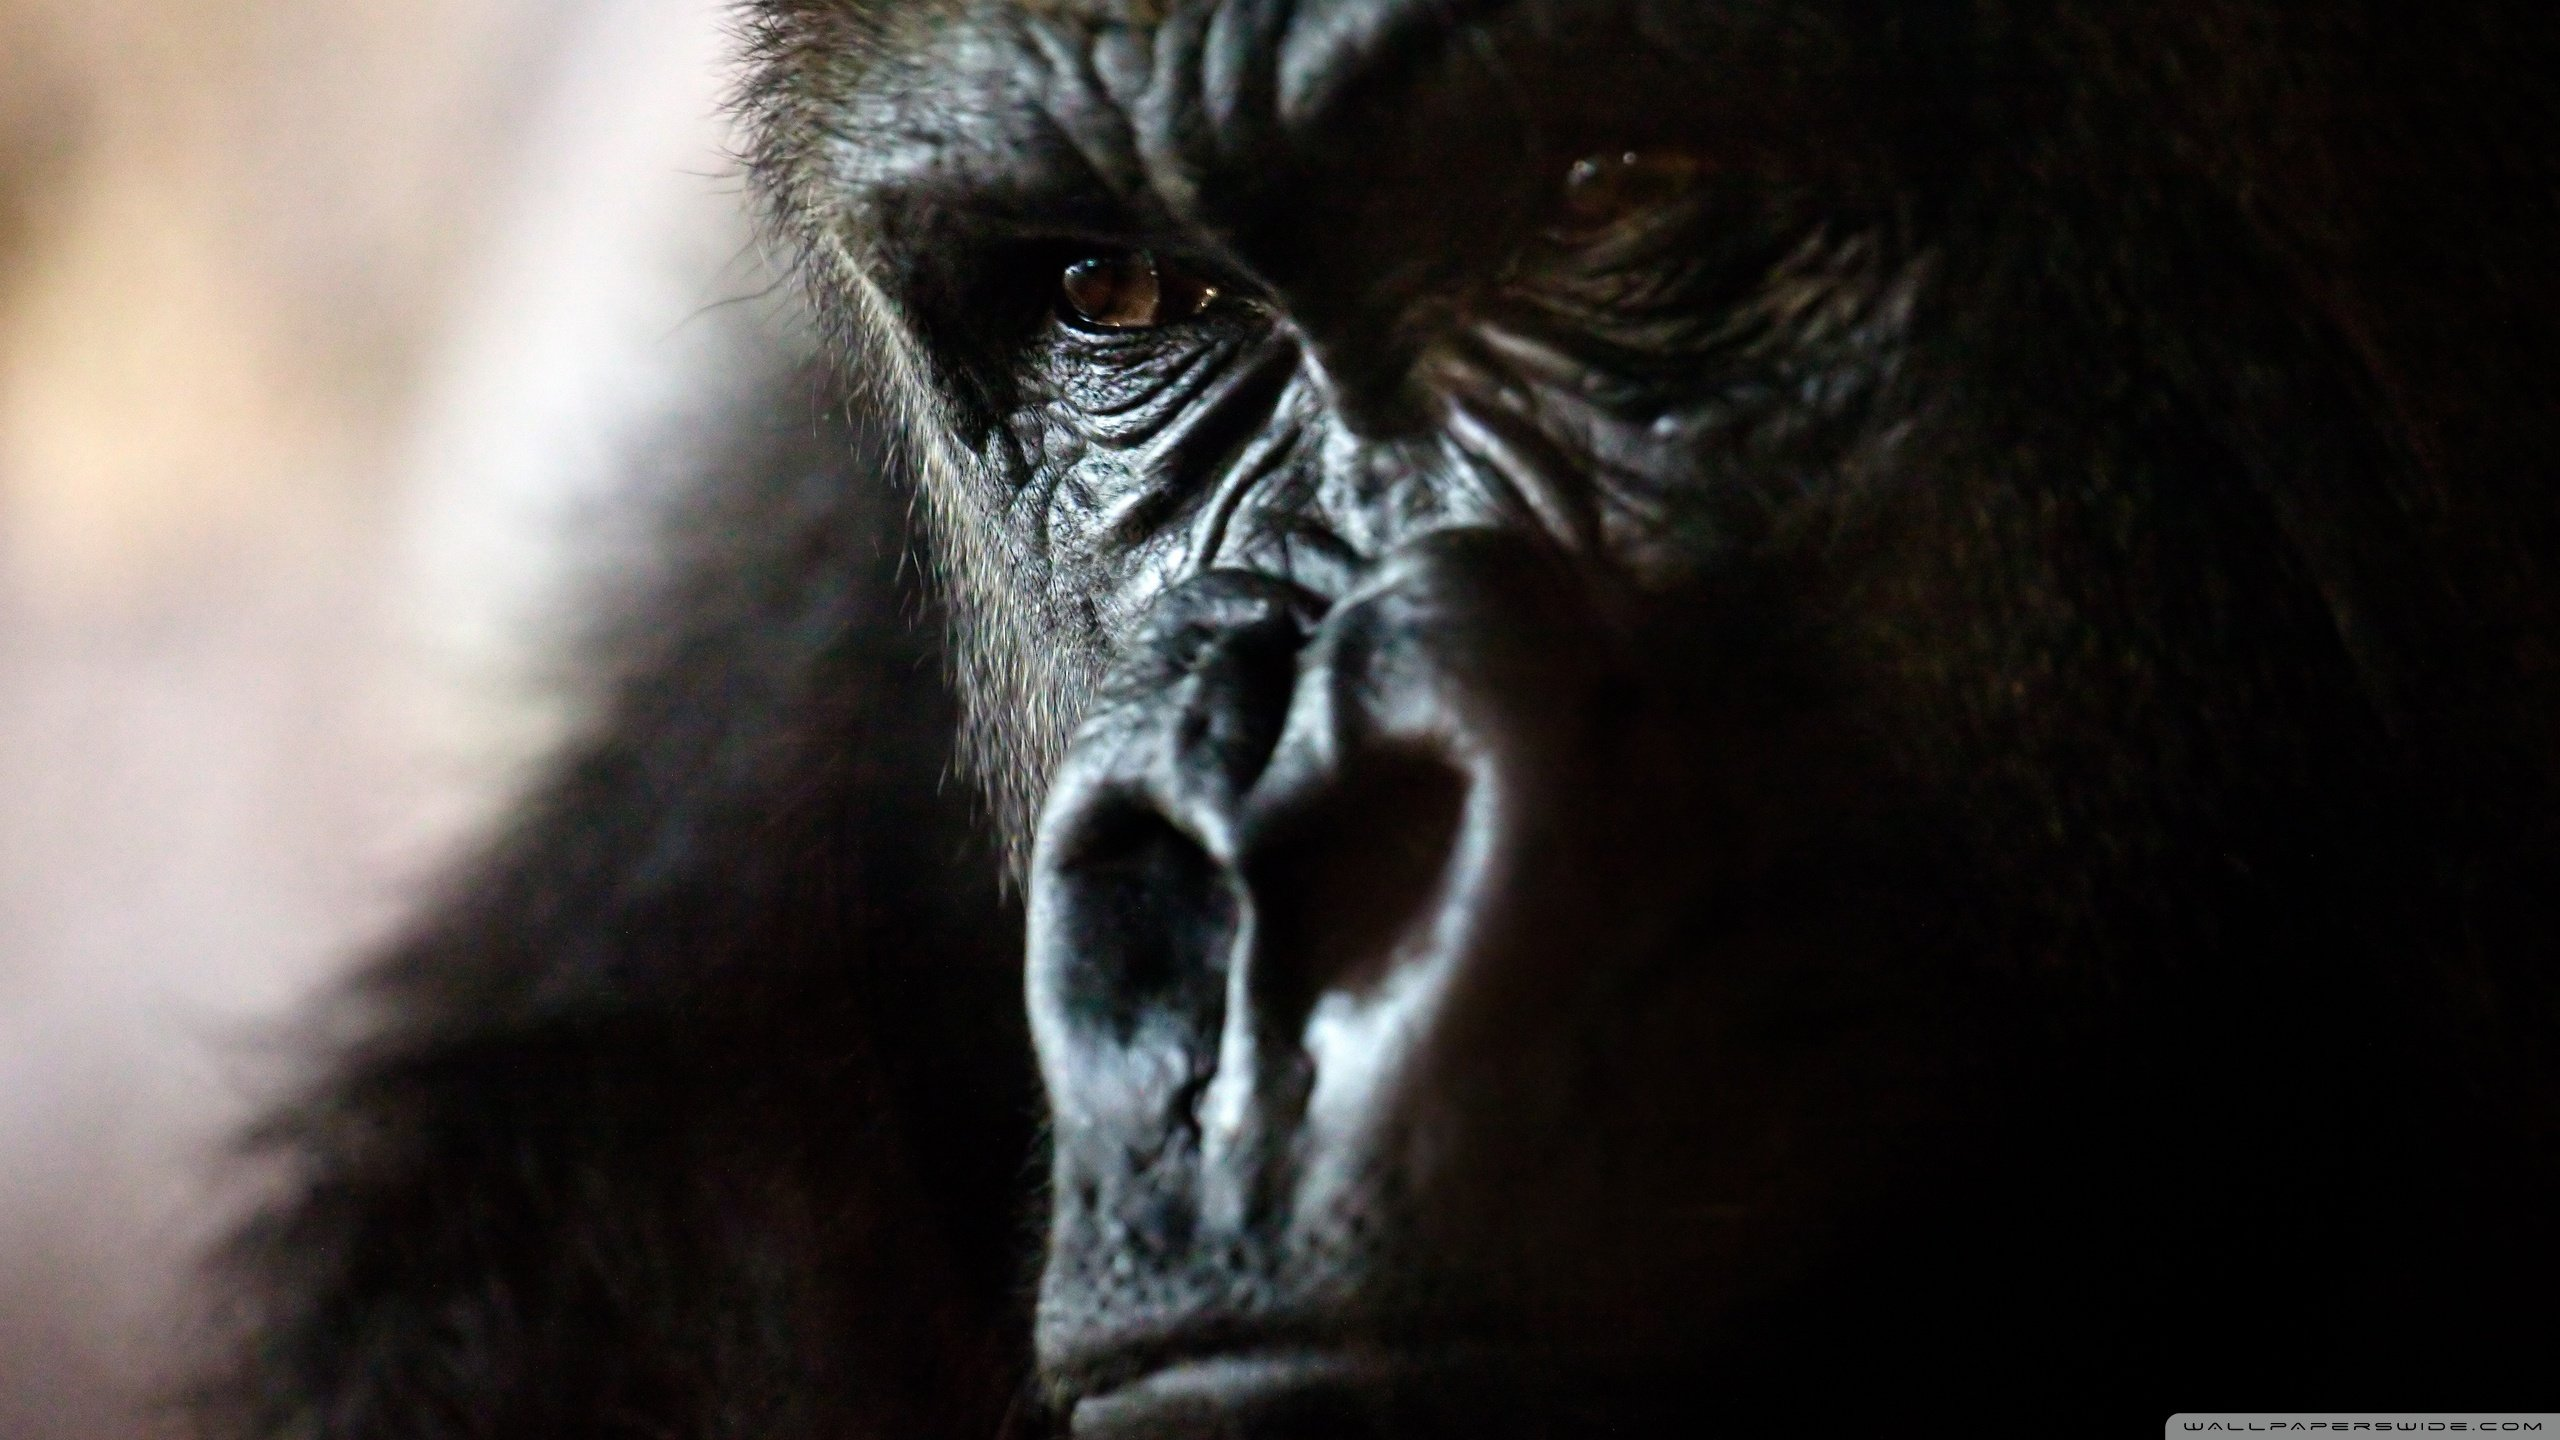 Awesome Gorilla free background ID:145546 for hd 2560x1440 desktop